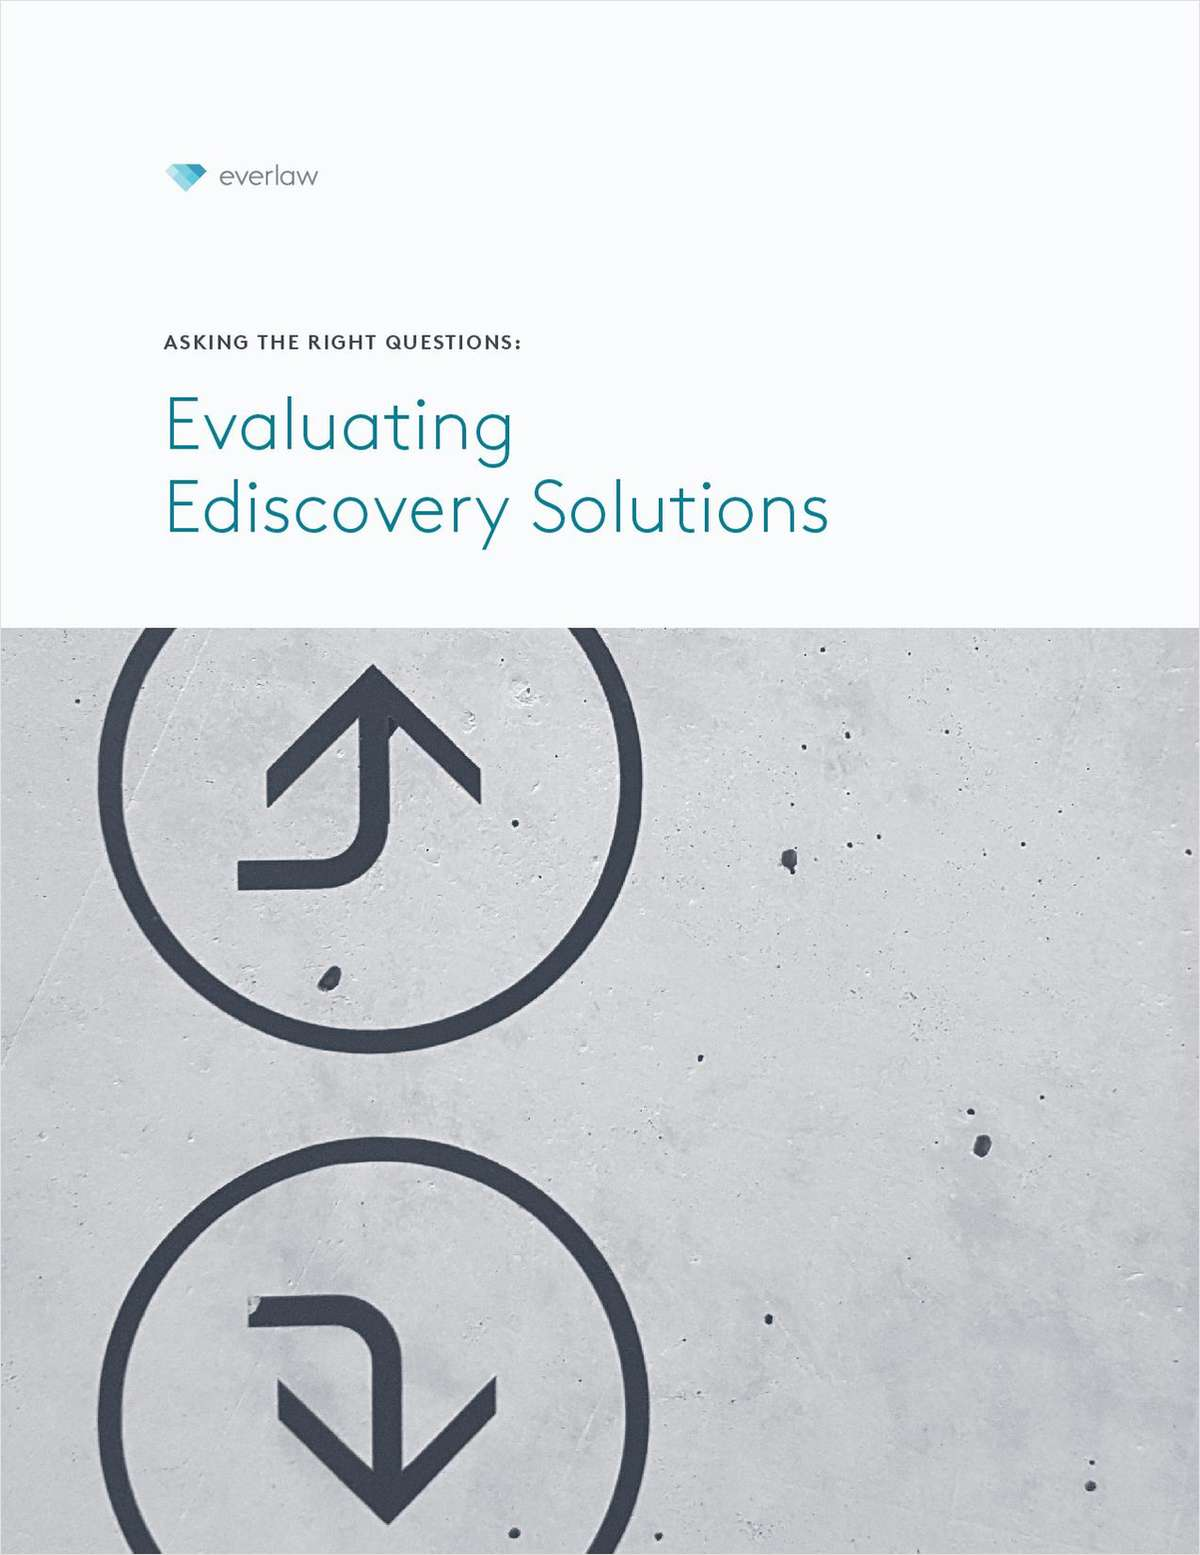 Asking the Right Questions: Evaluating Ediscovery Solutions